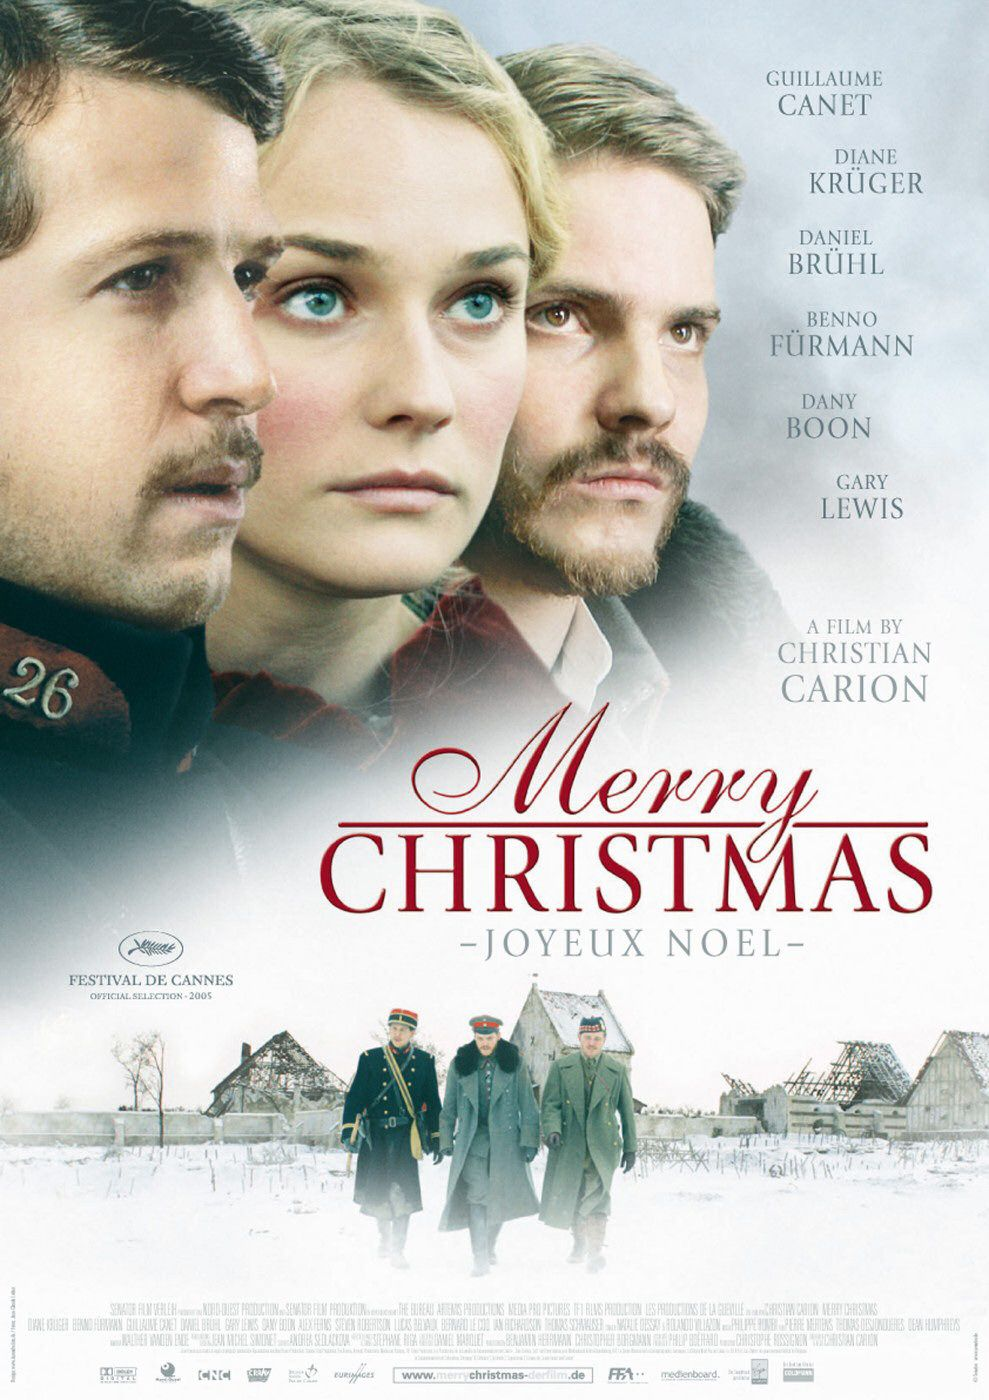 Movie Churches: World War 1 Movie Churches: Joyeux Noel (2005)